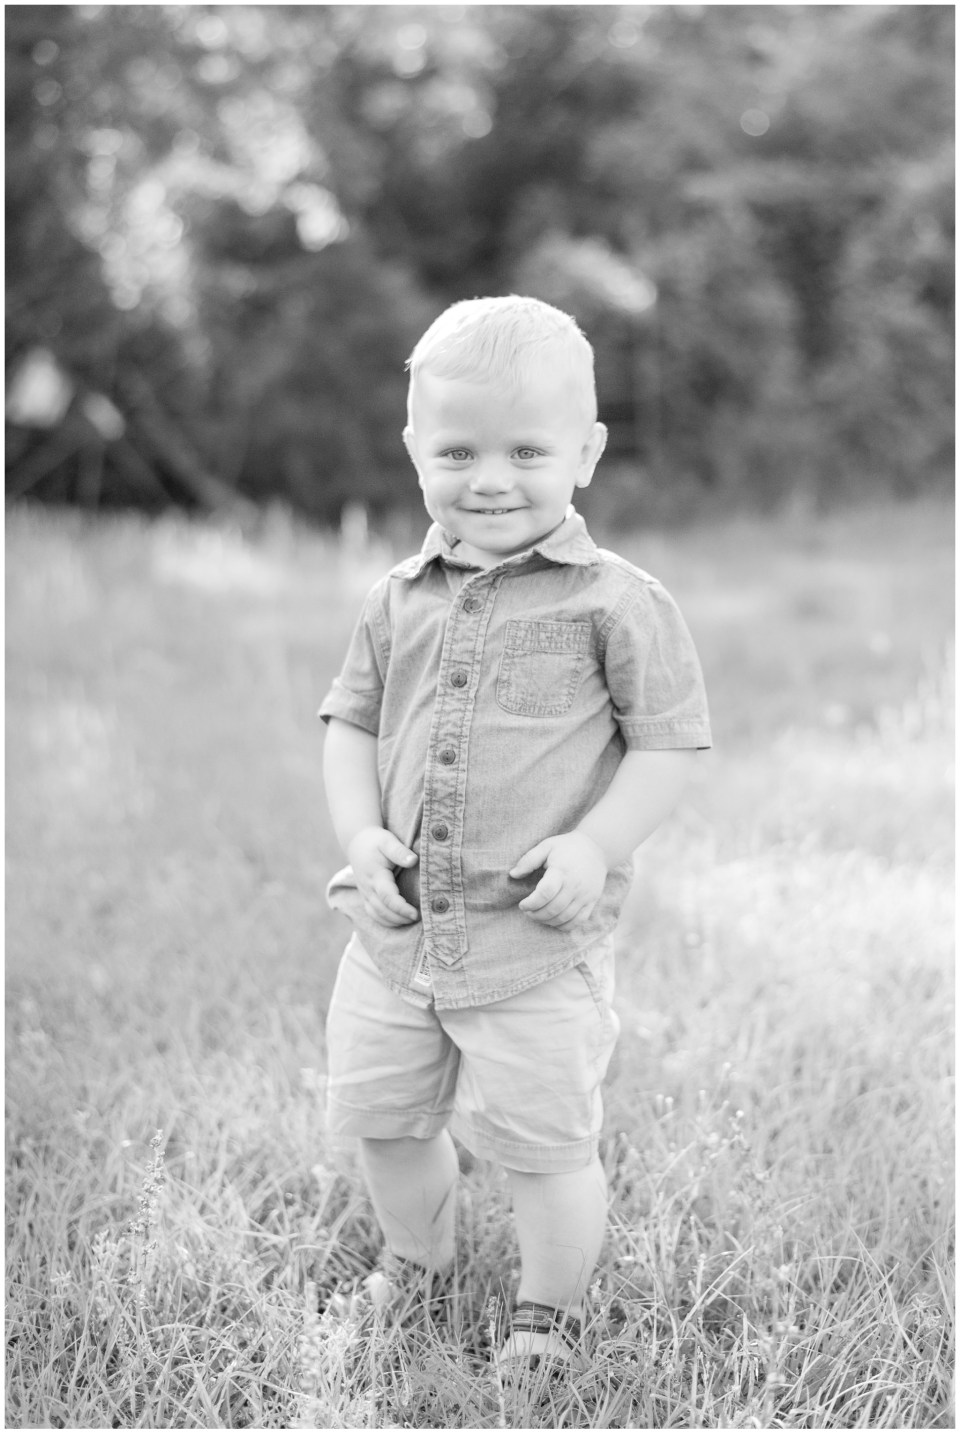 Houston family photographer - portrait session for family at their country home